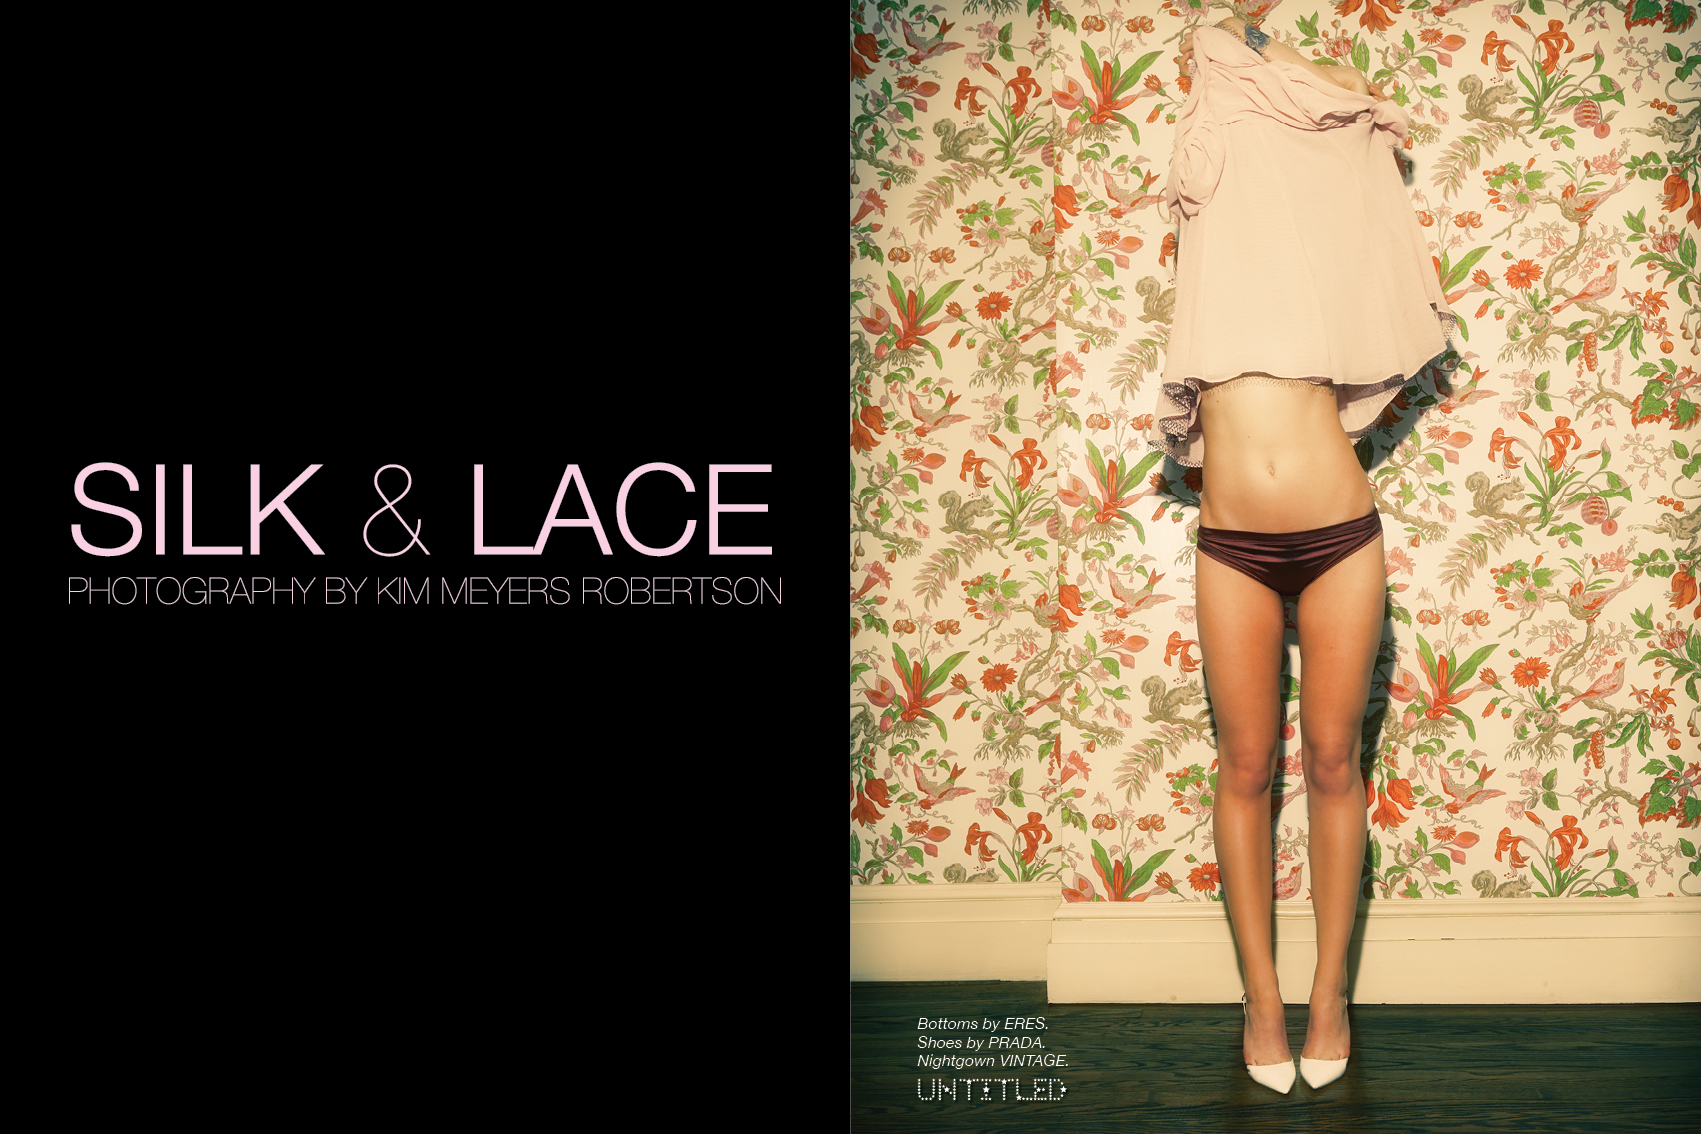 Silk & Lace - The Untitled Magazine - Photography by Kim Meyers Robertson